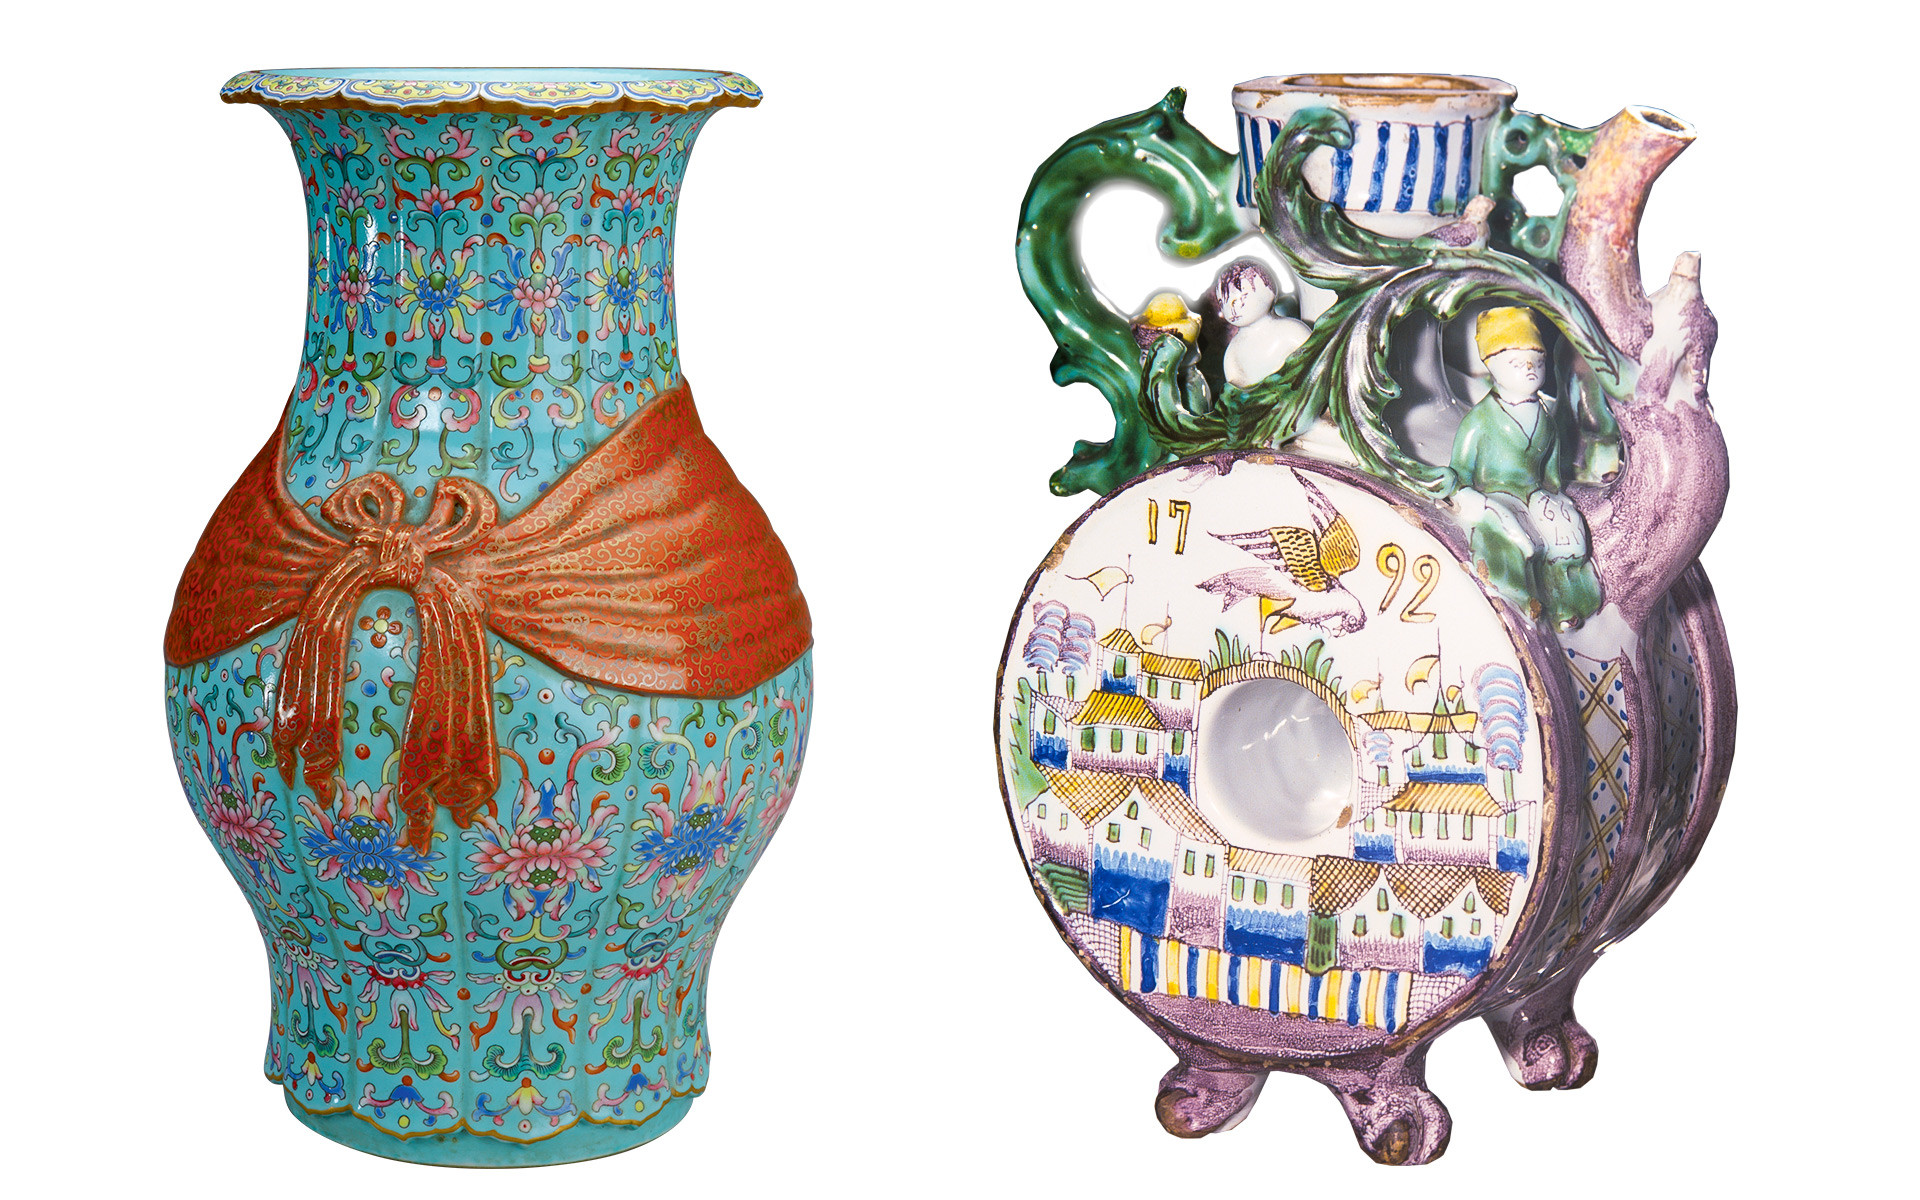 Left: Chinese Baofu vase of the Quing era, Qianlong period.